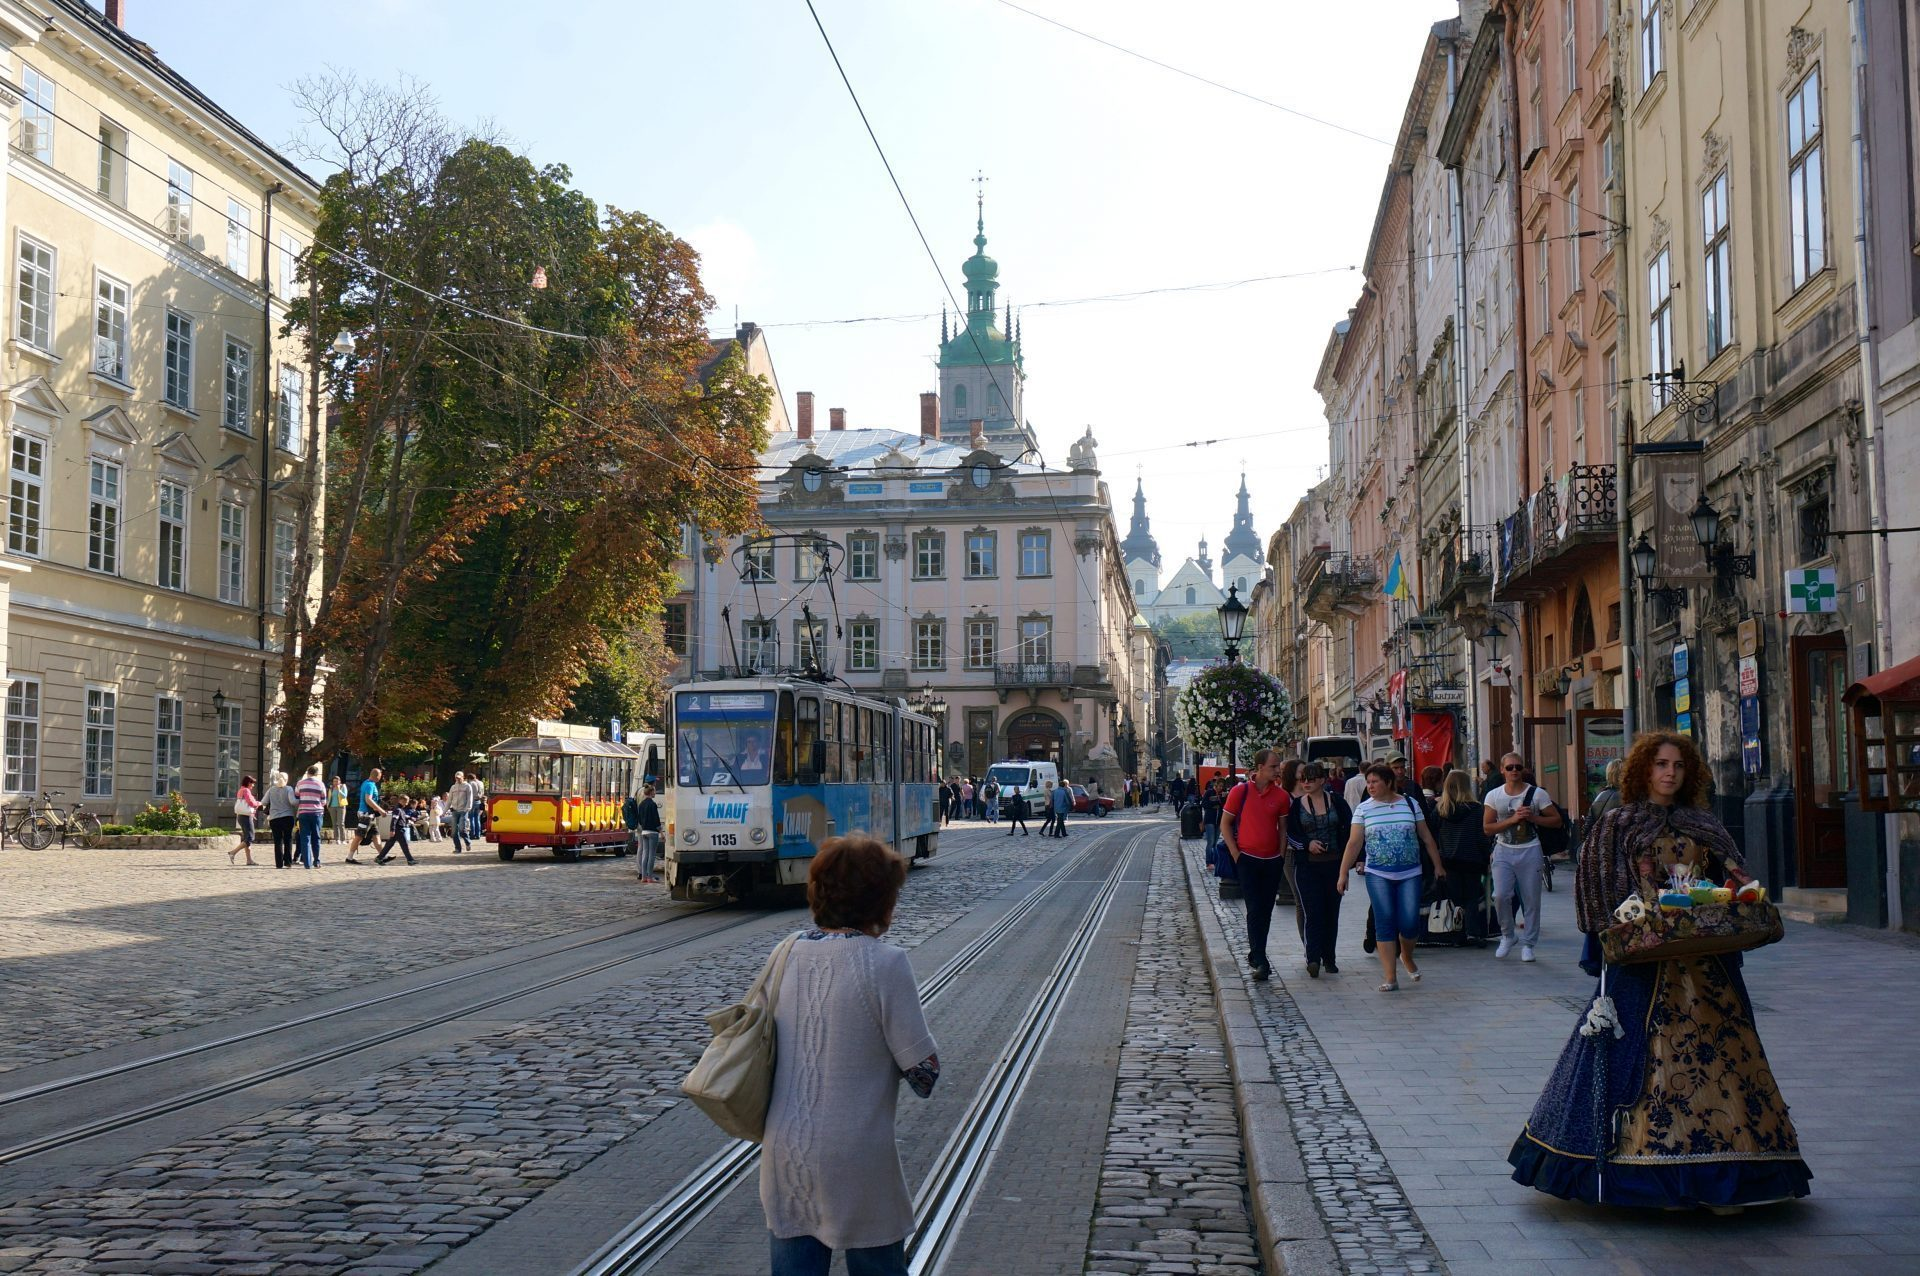 Our Ukraine Vacation: Why Travel To Ukraine Now?